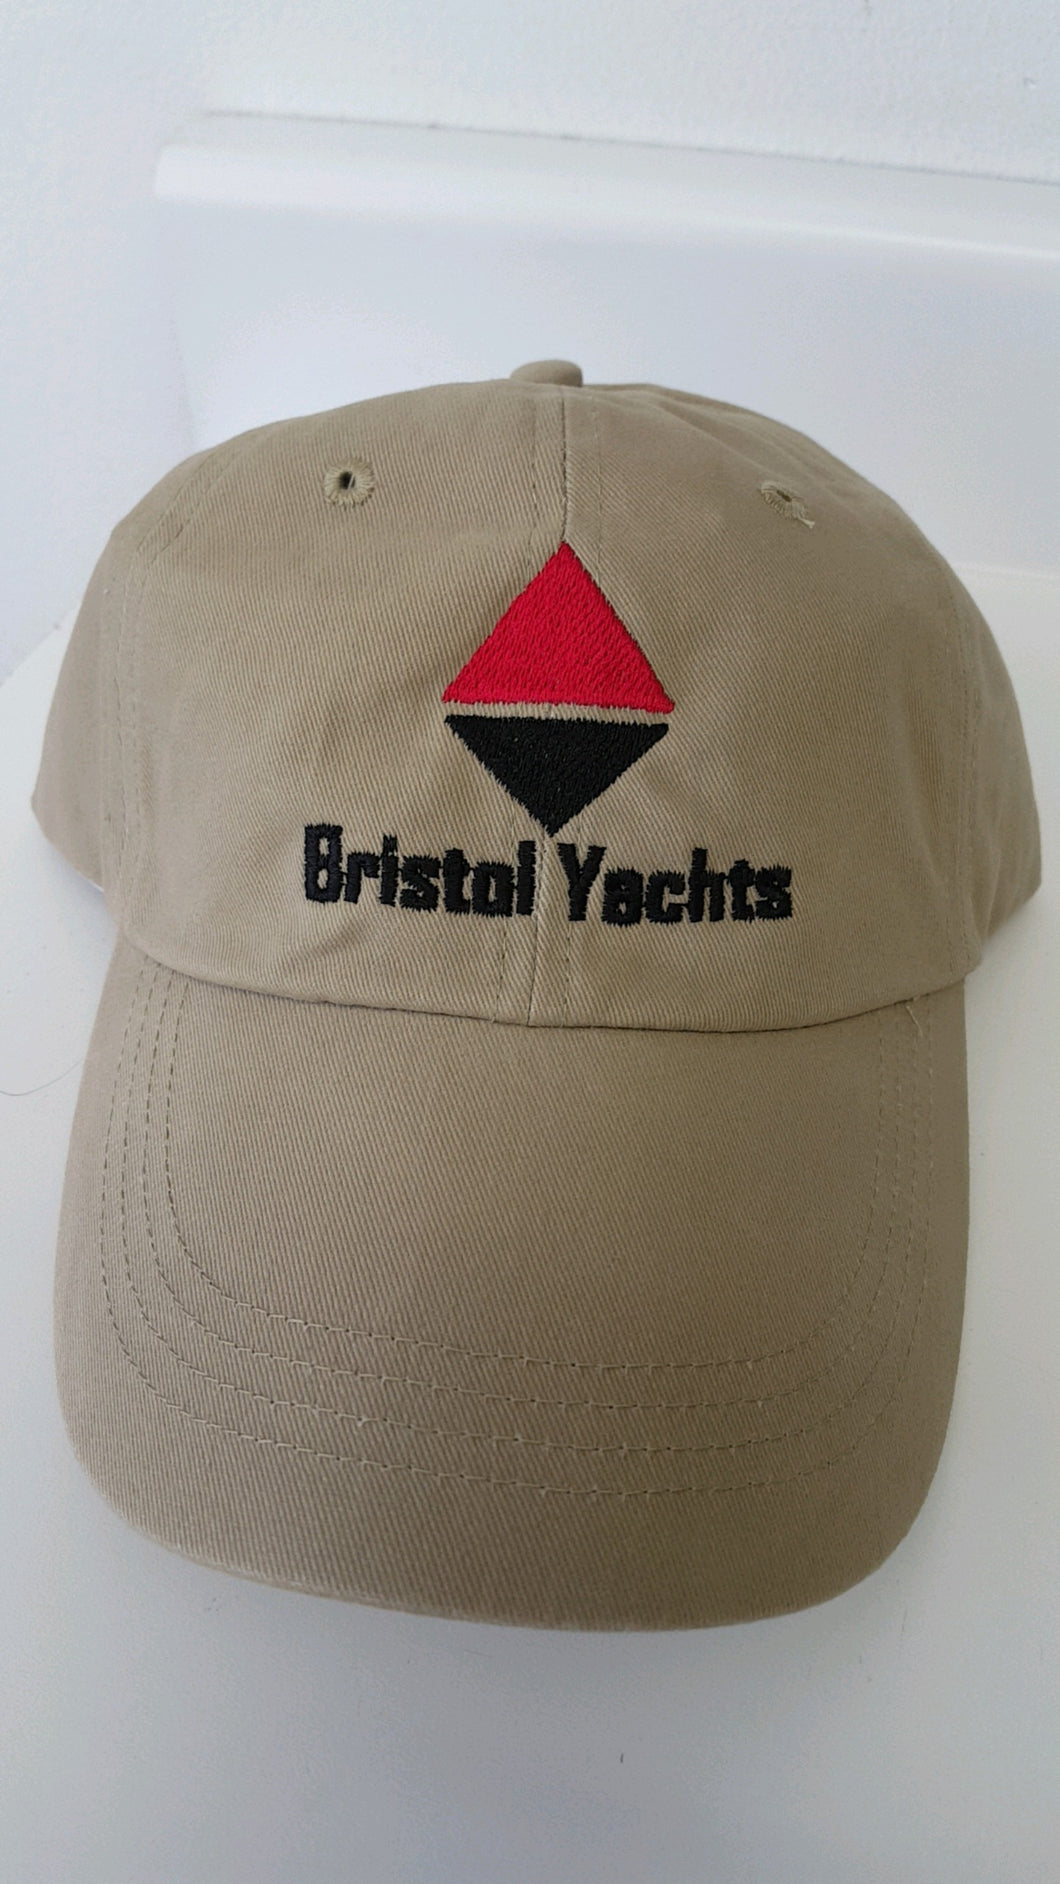 Bristol Yachts Embroidered Khaki Cap